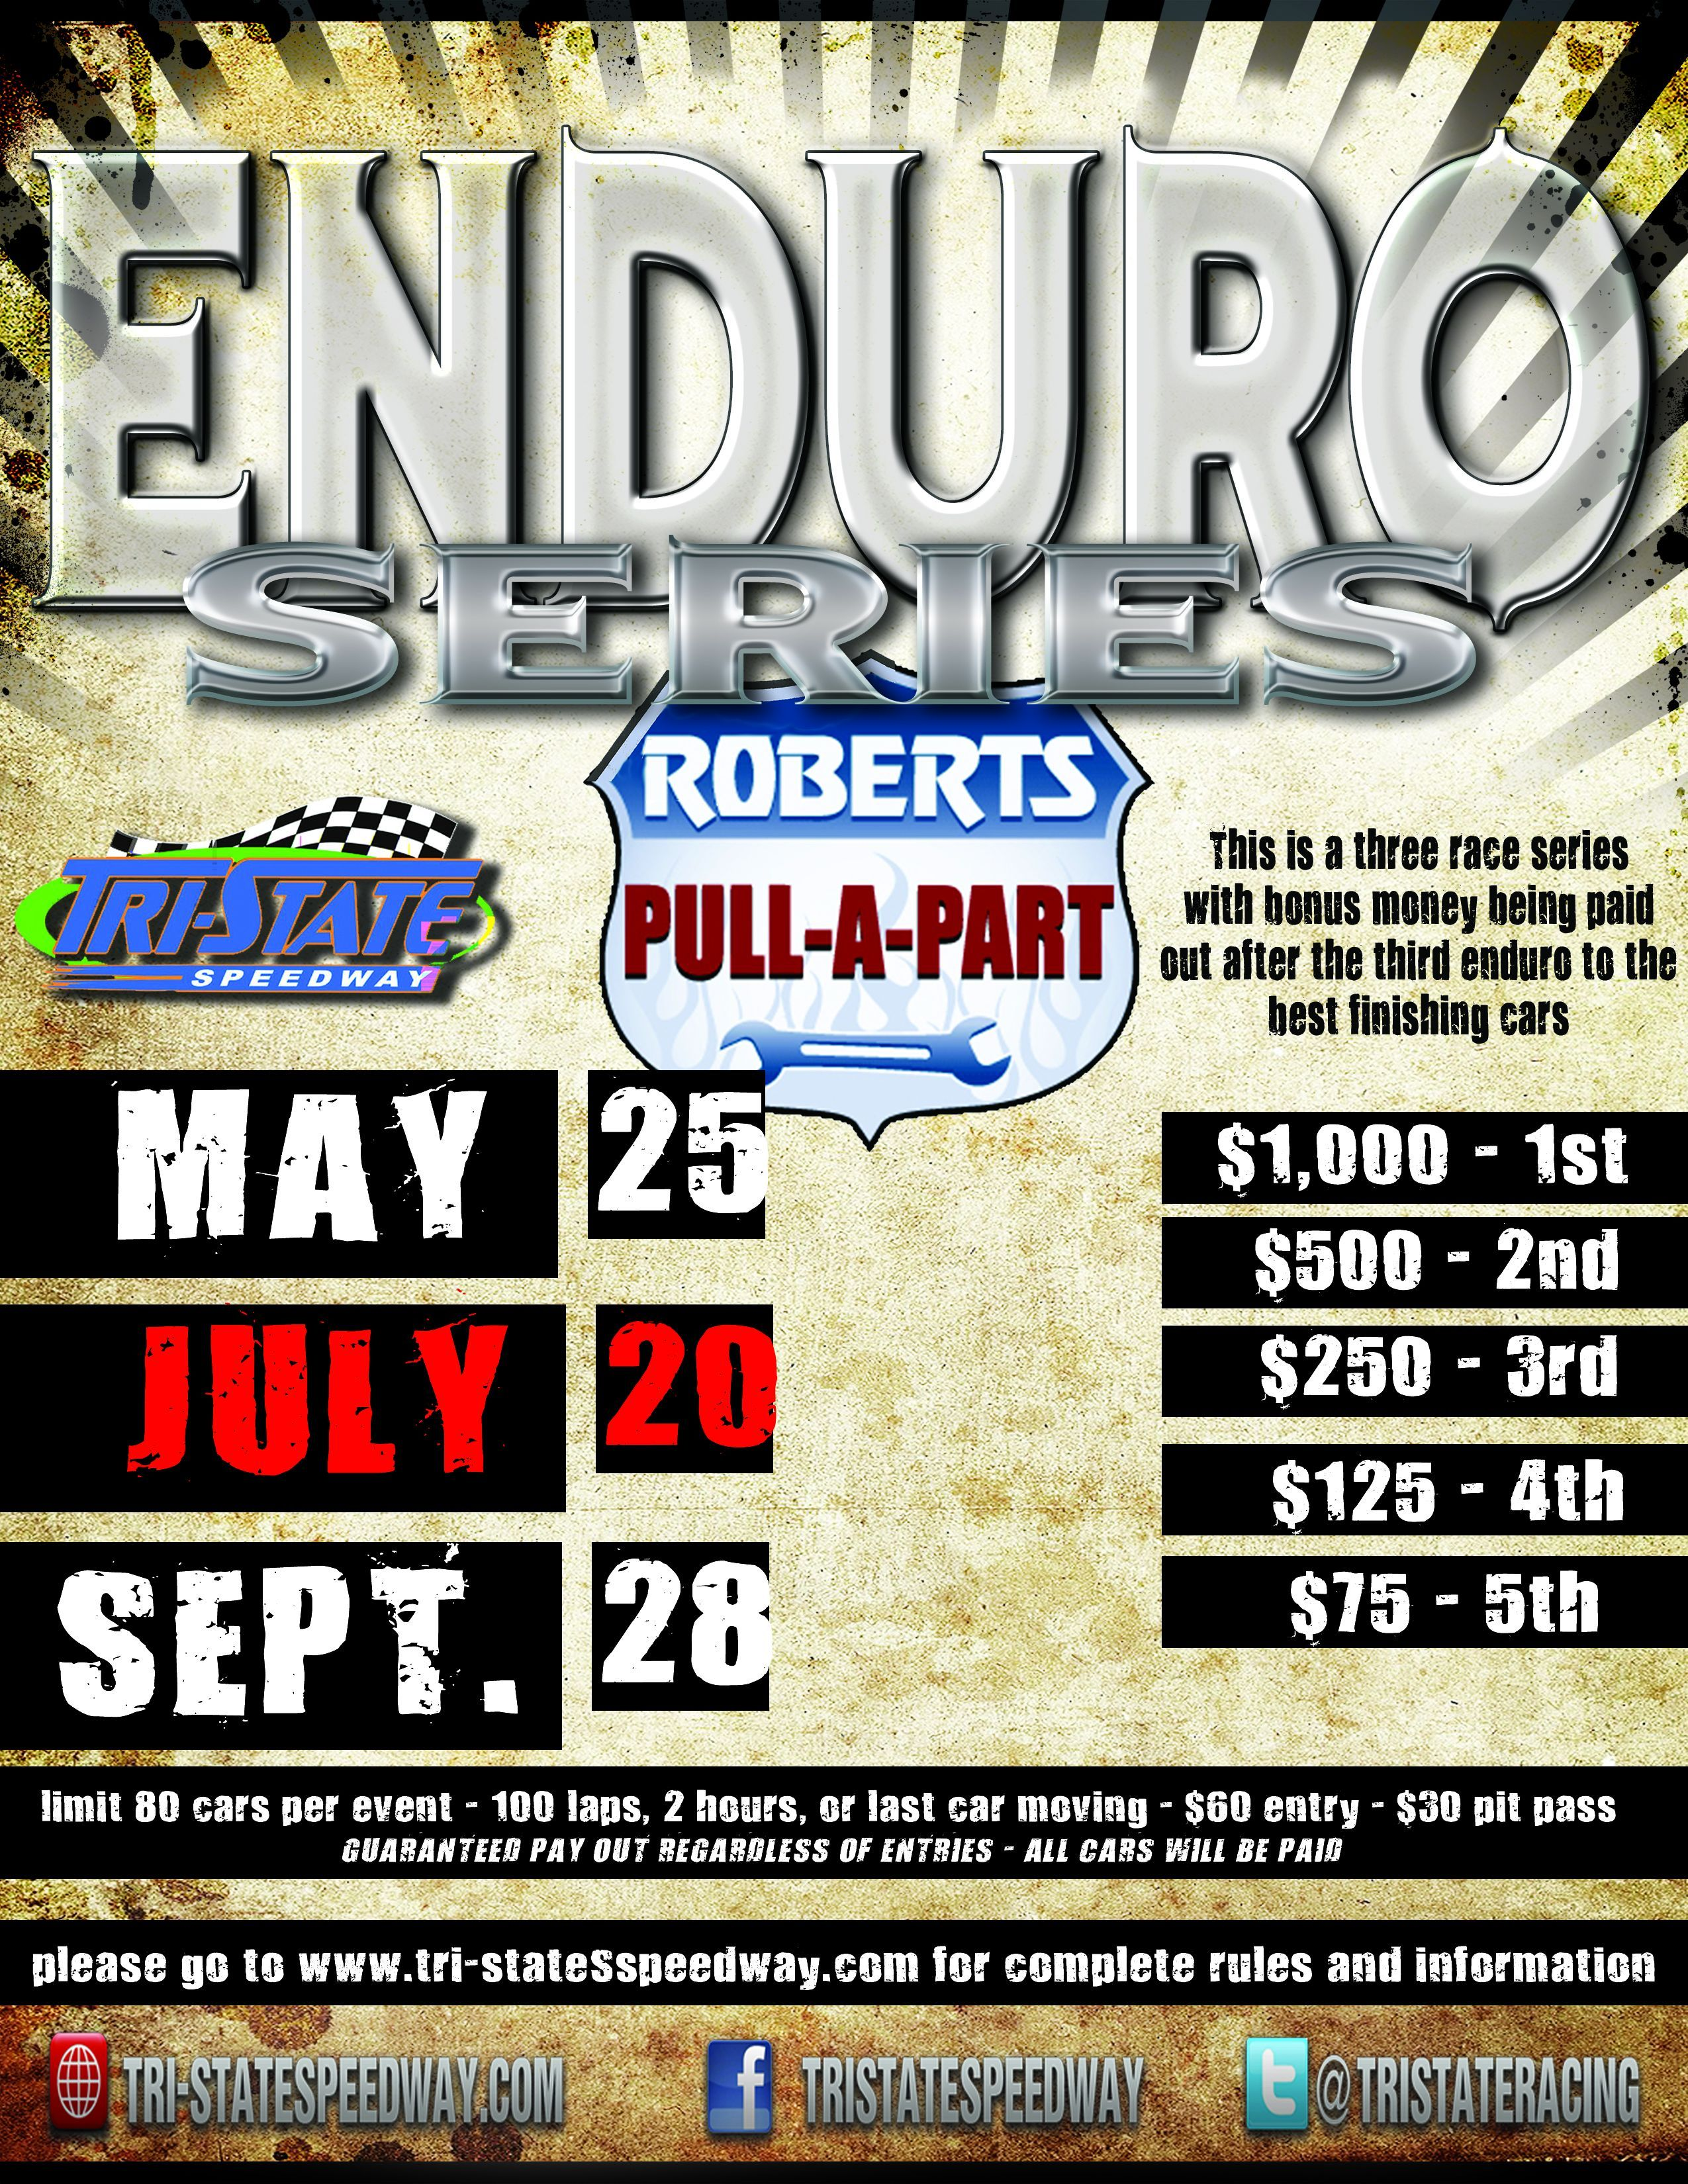 Enduro Series Race #2 - July 20th, 2013